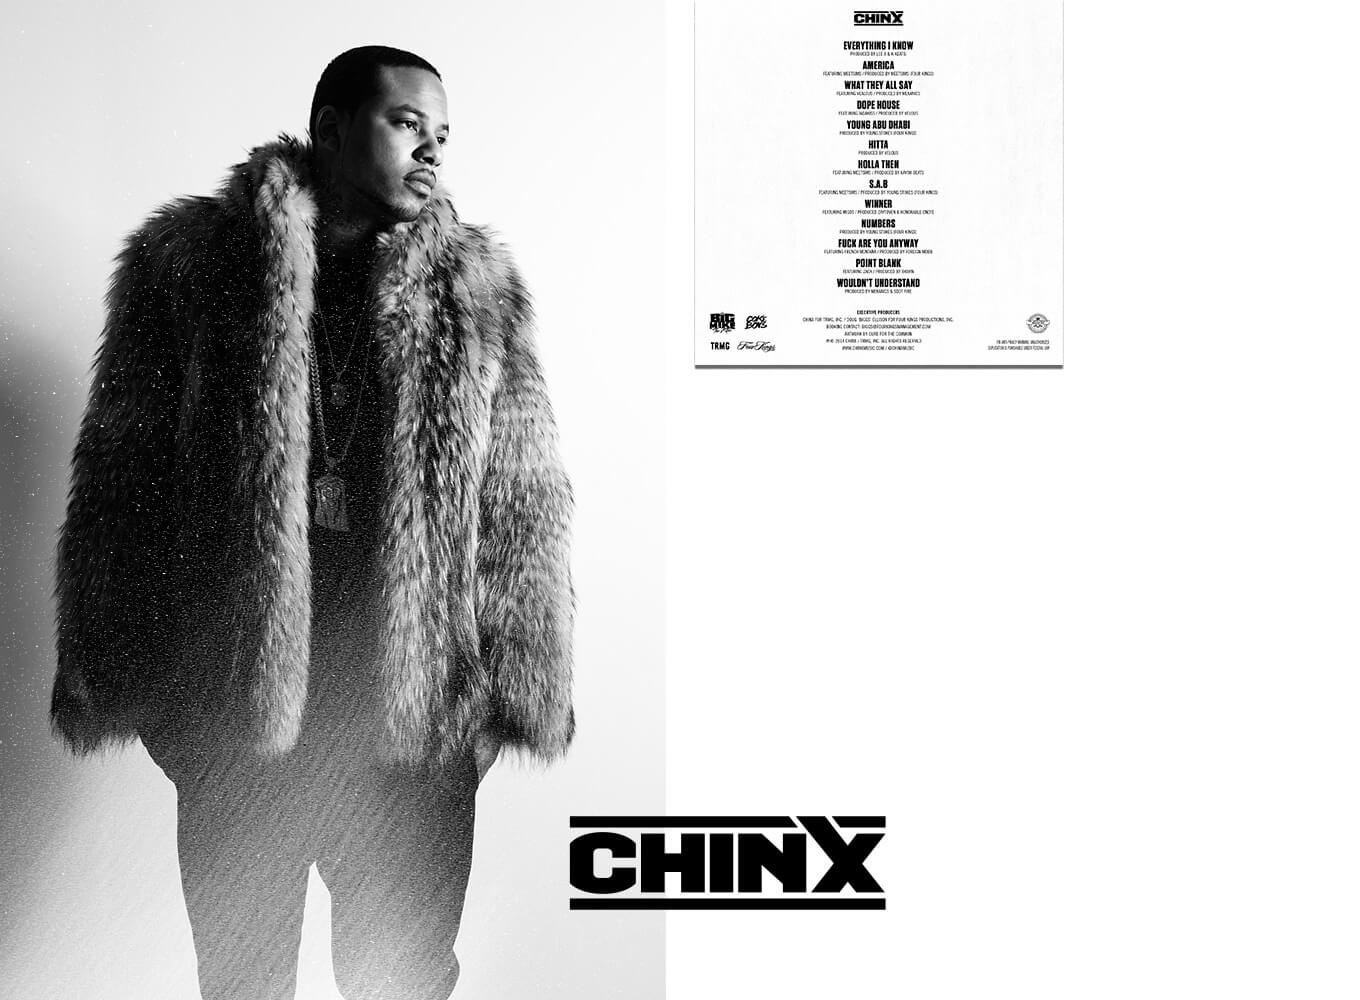 Andy Sheffield - Chinx